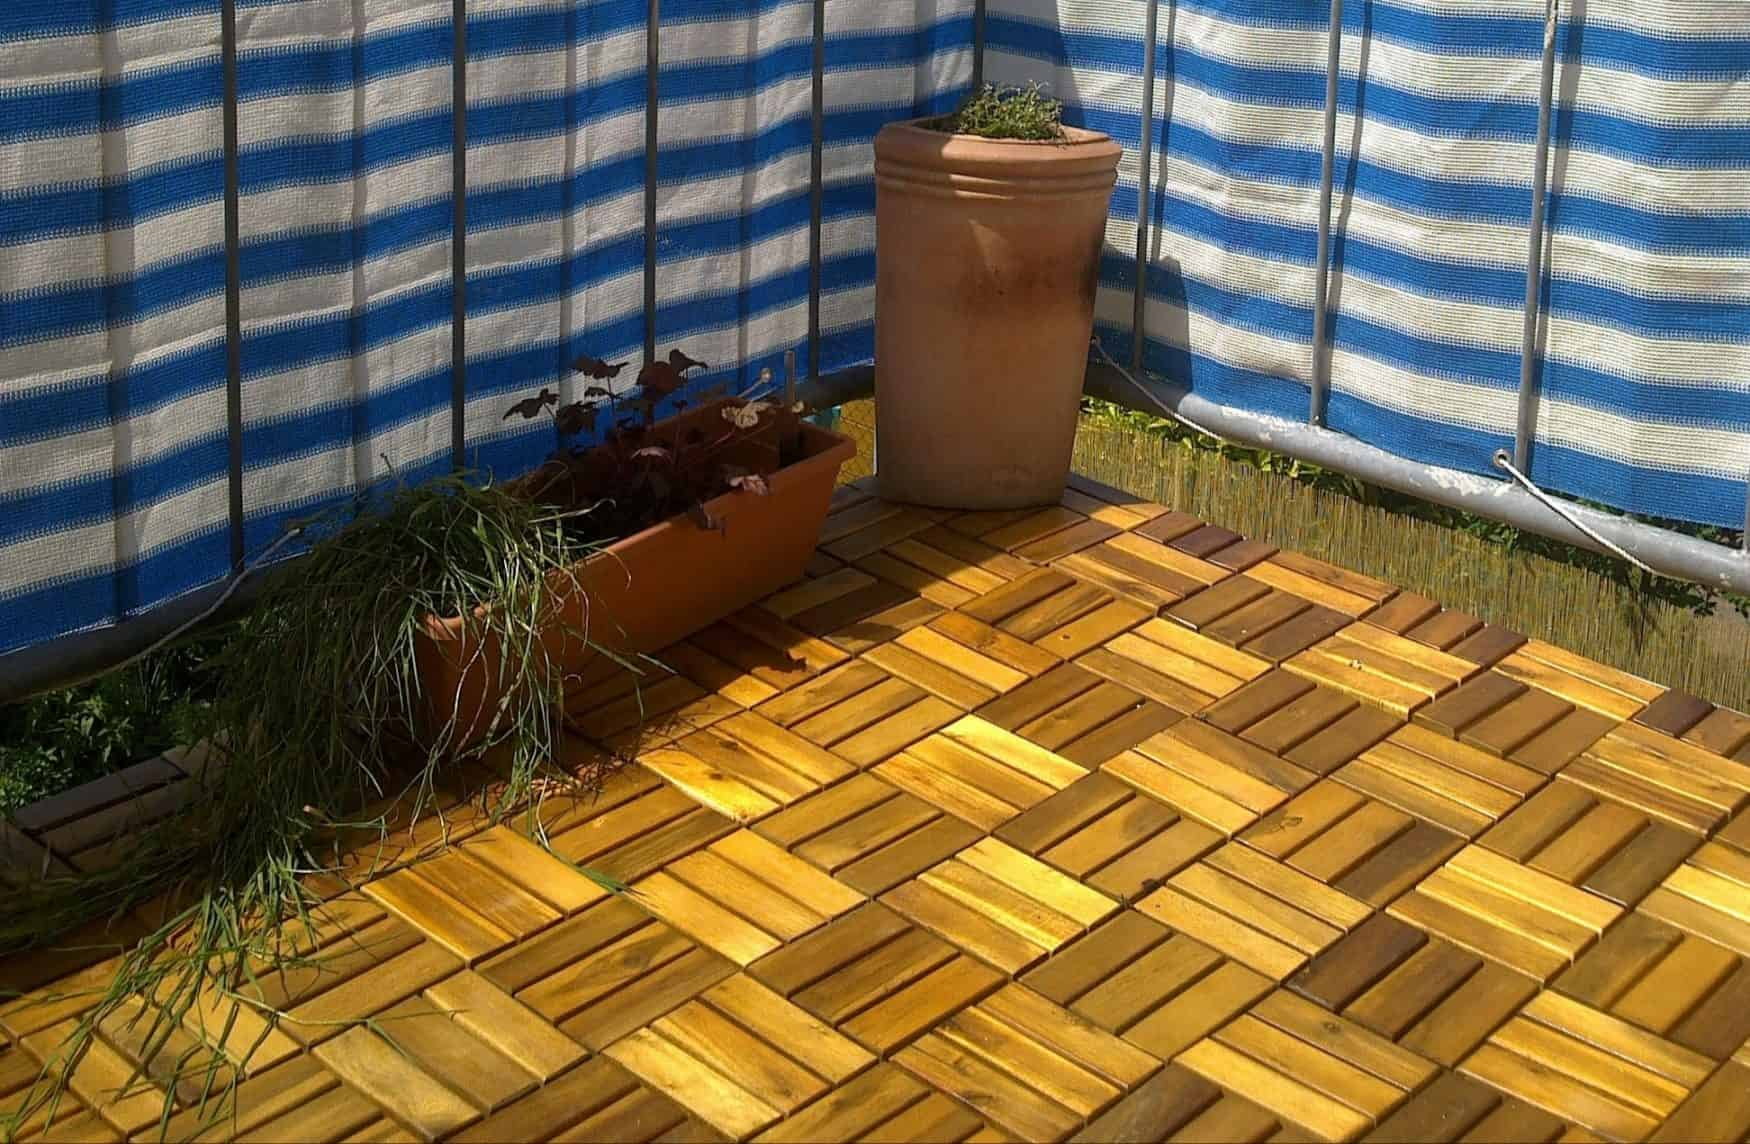 Wooden tiles on a balcony